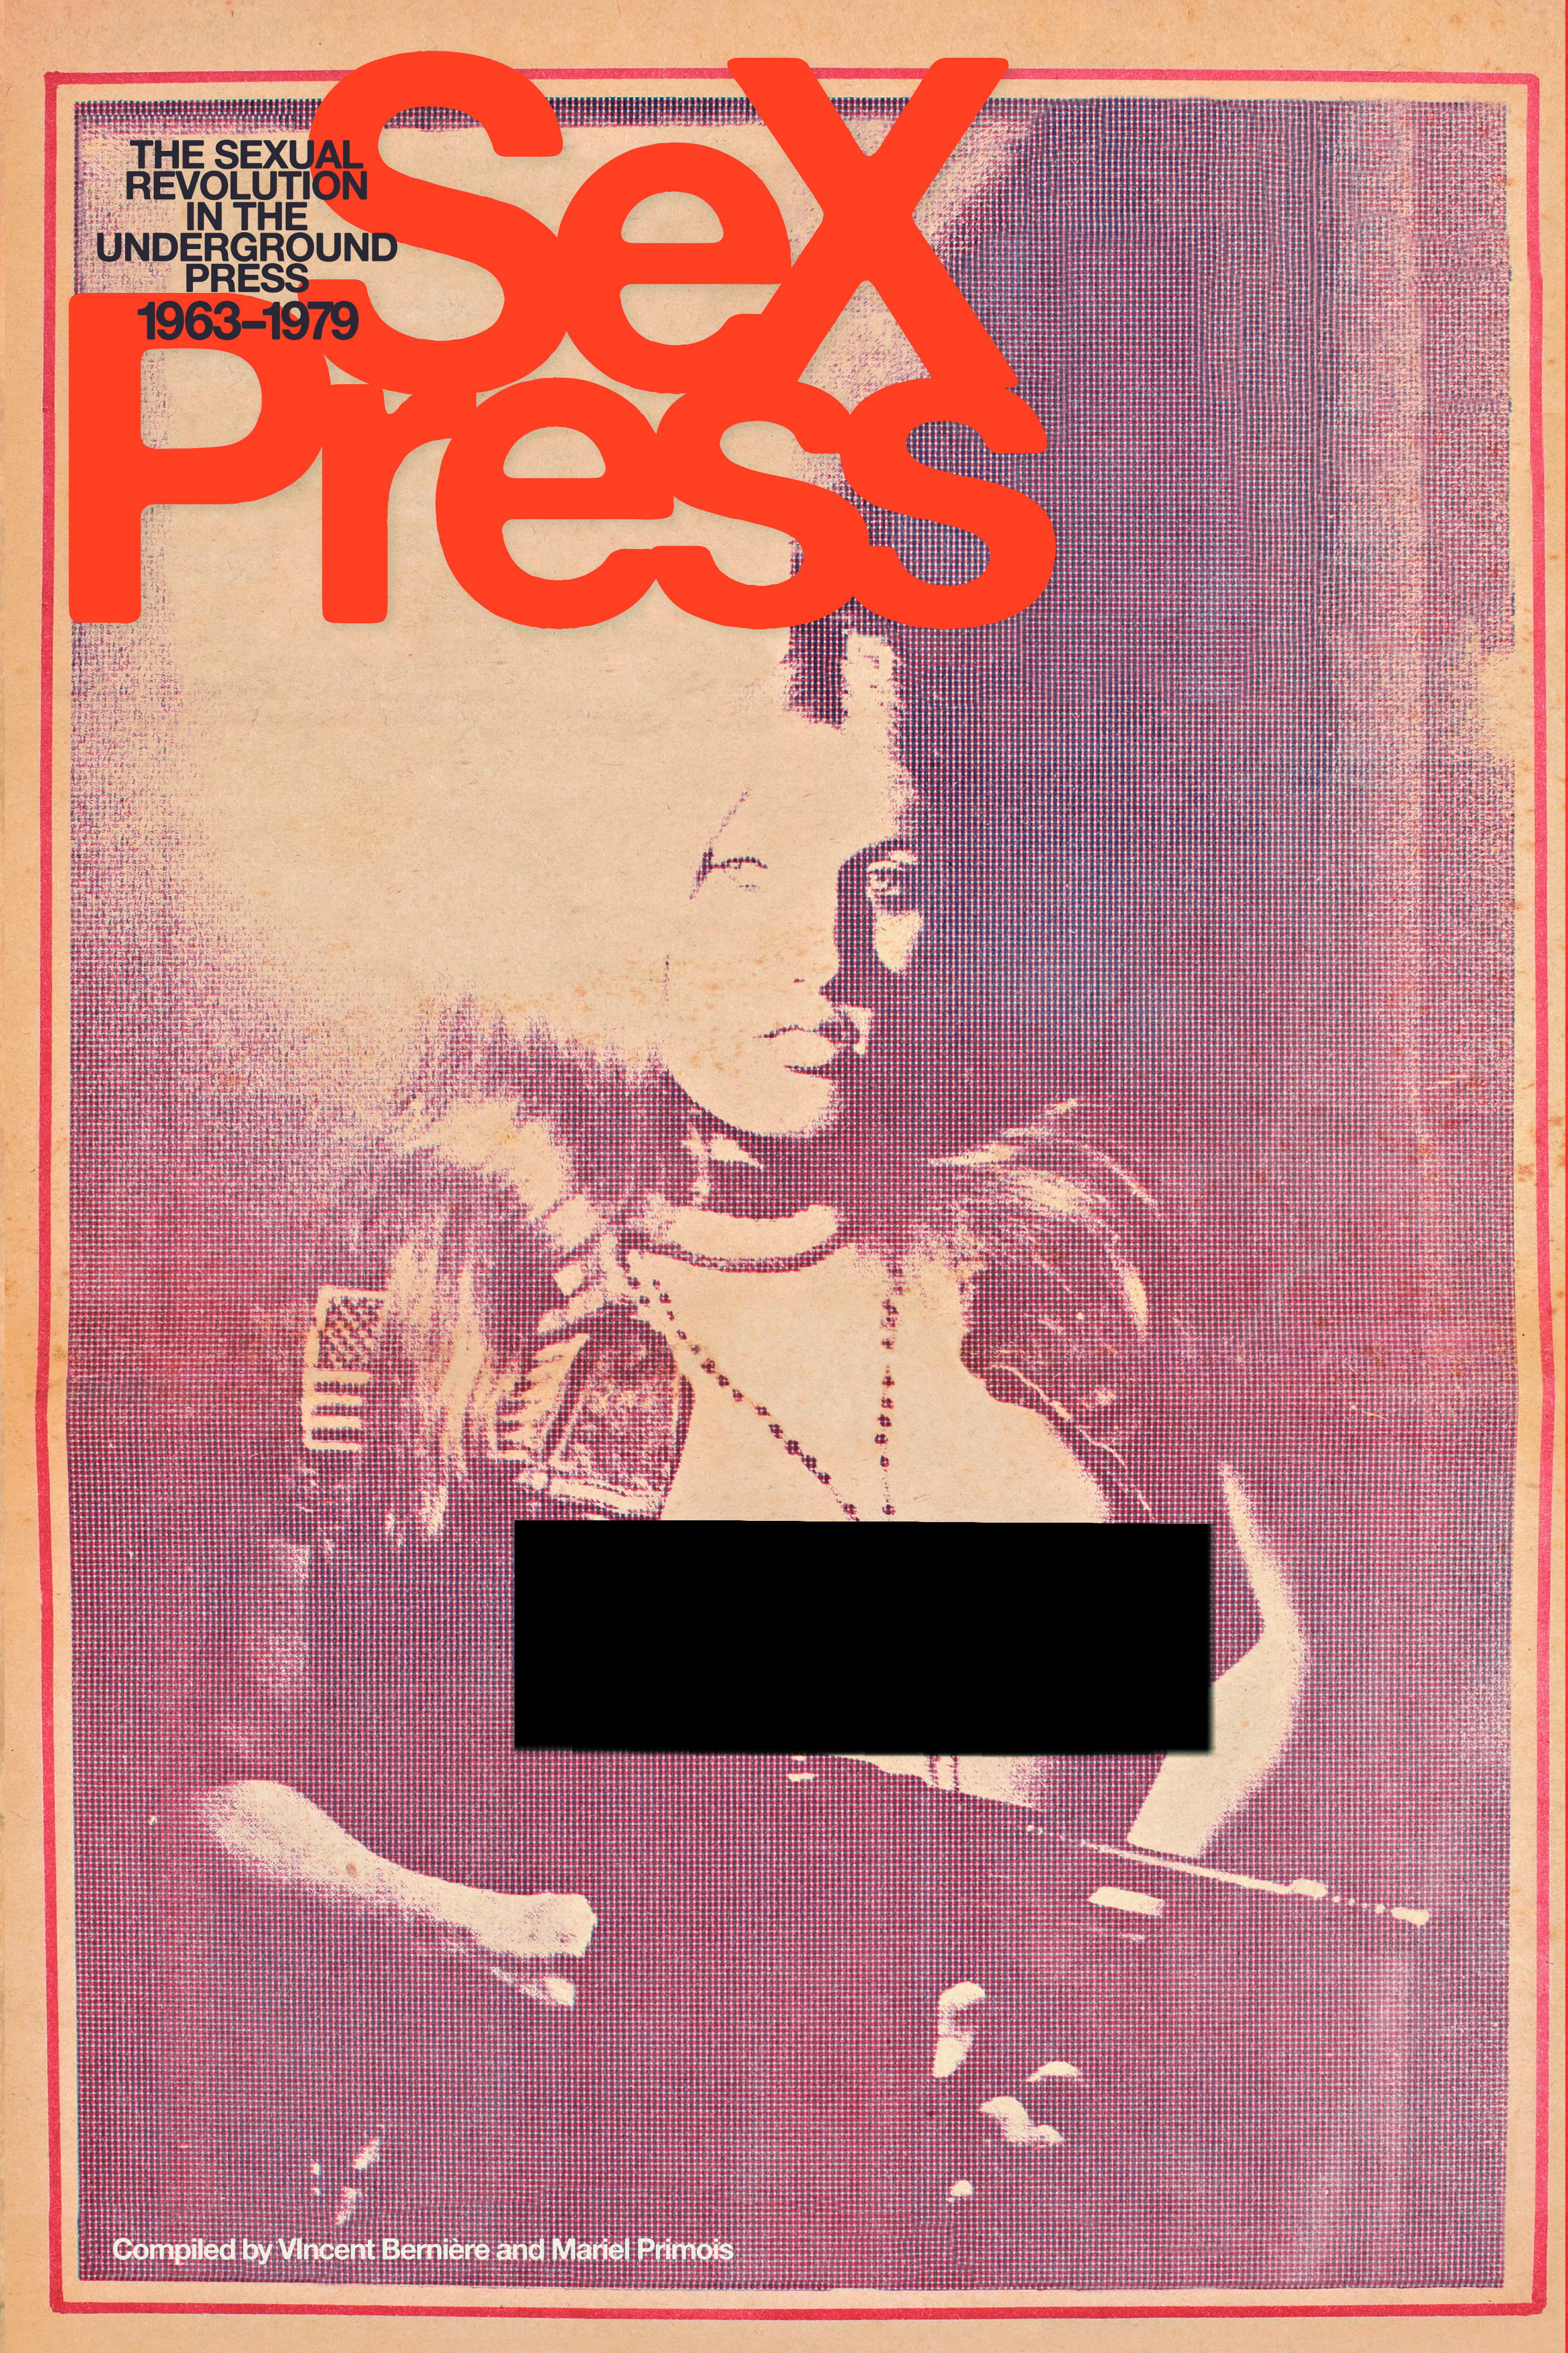 SEX PRESS SEXUAL REVOLUTION IN UNDERGROUND PRESS 1963-79 SC